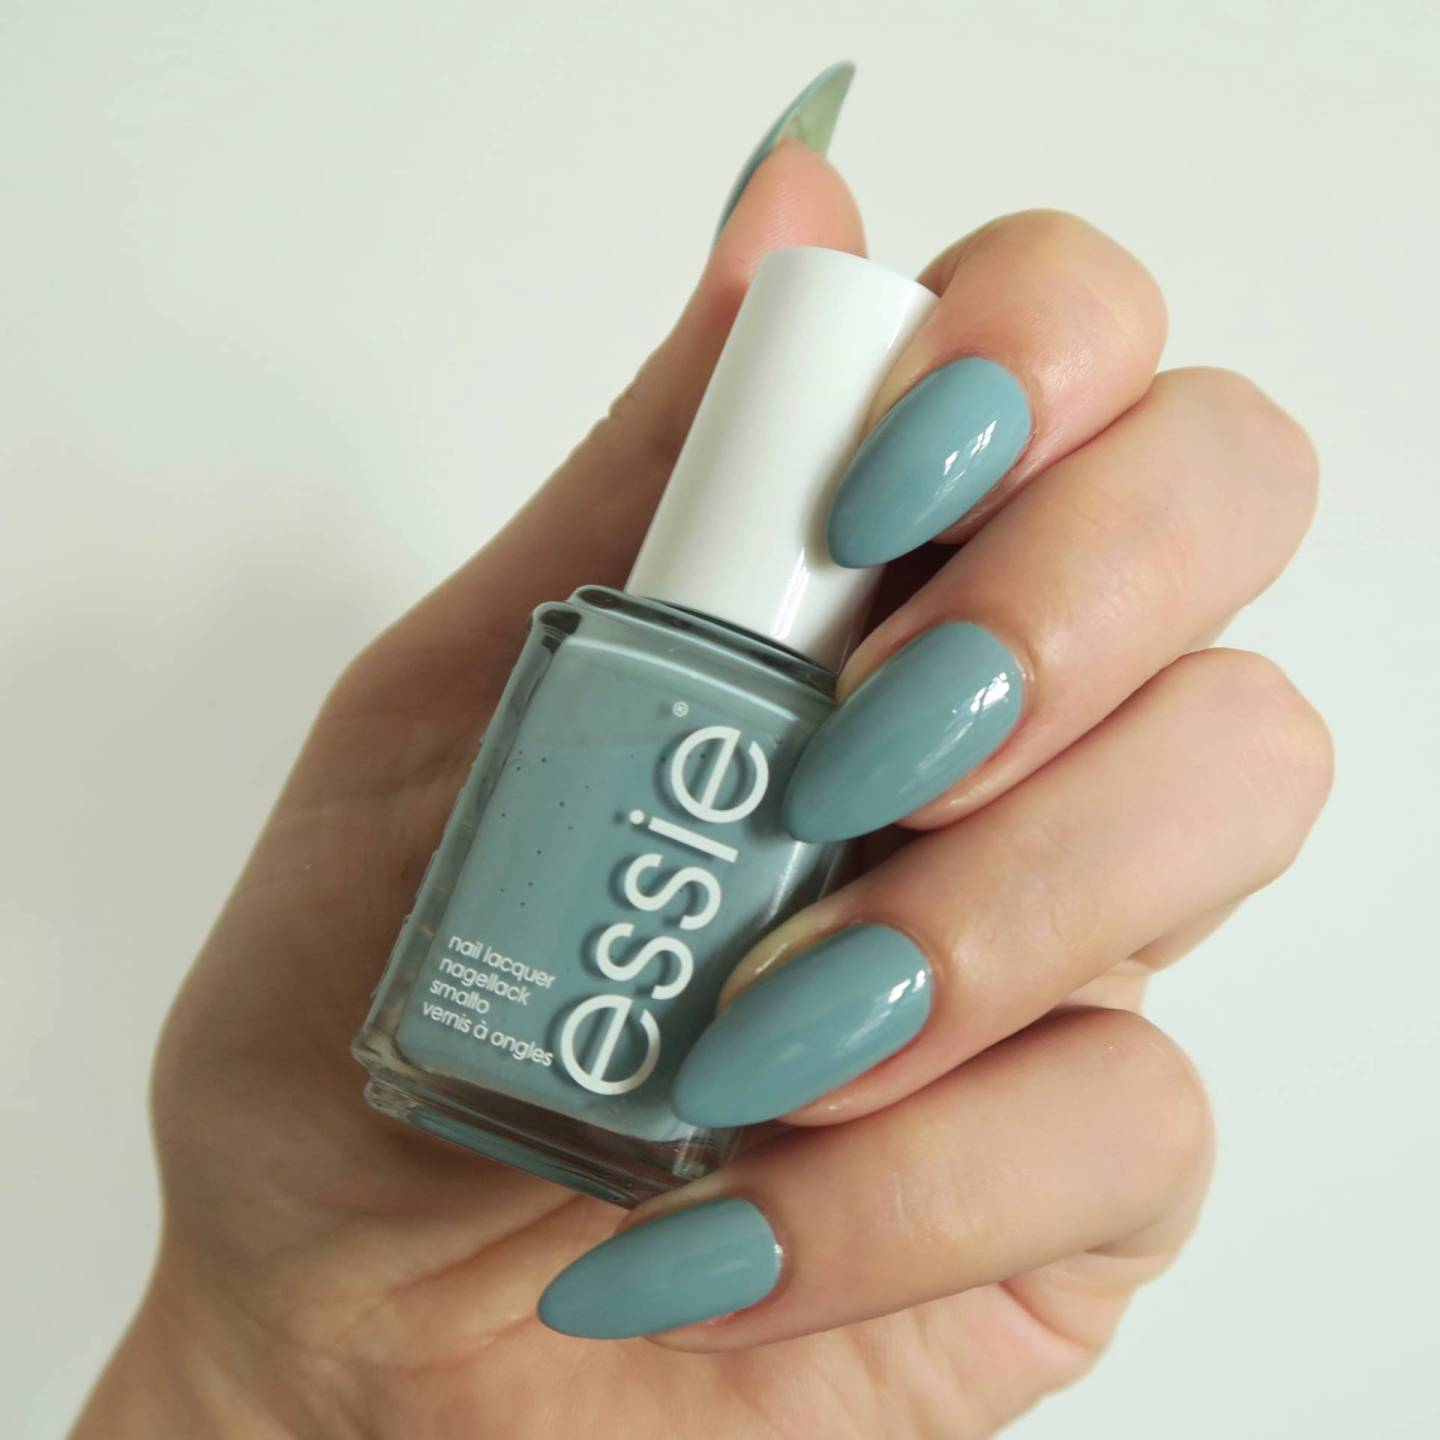 Essie Fall Collection 2016 Tokyo Review Udon Know Me - Talonted Lex